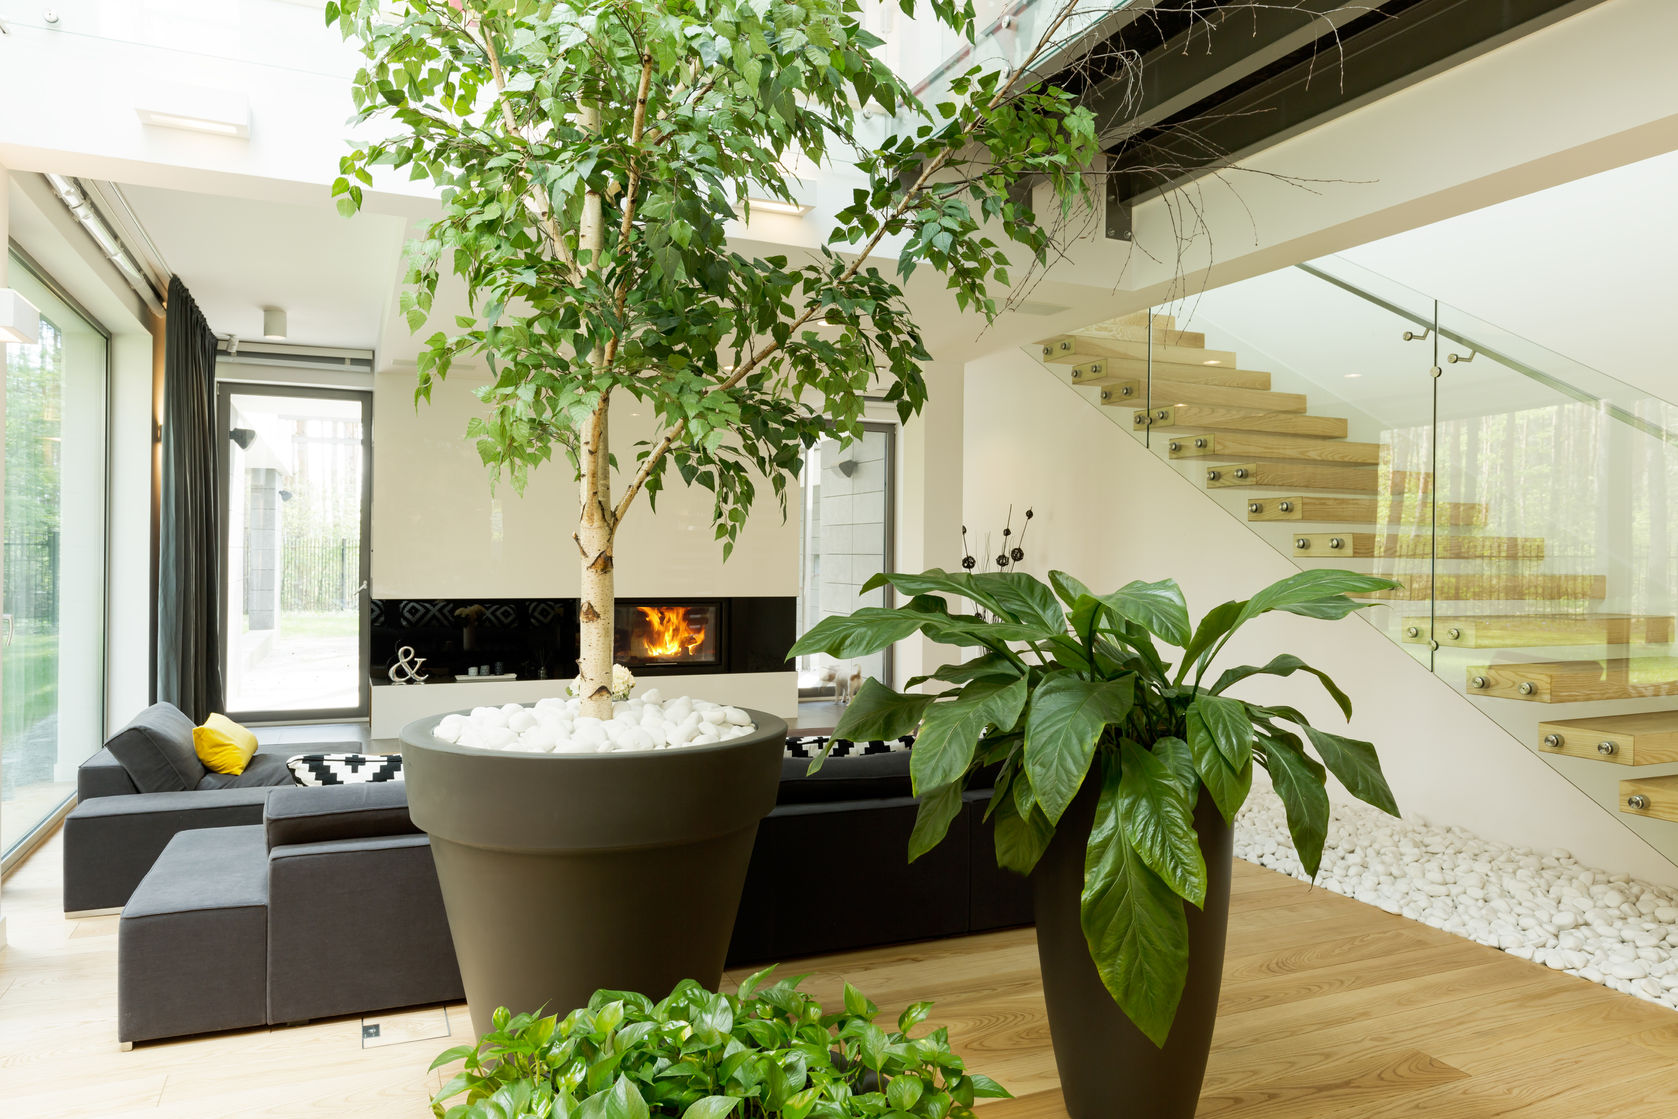 Indoor Gardening: How to Plant & Get Benefits From Indoor Greenery